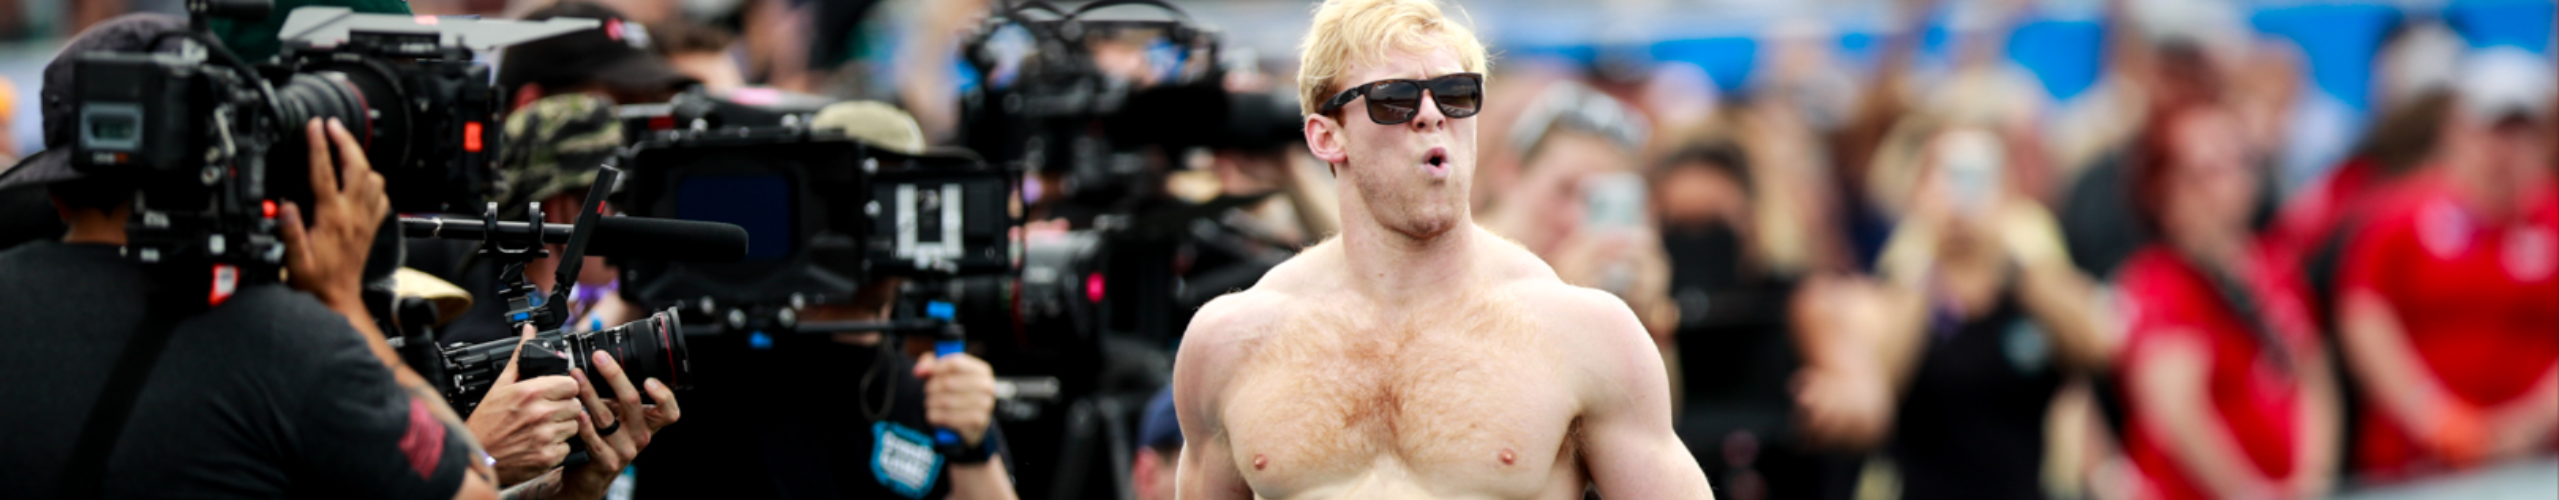 Pat Vellner - CrossFit Games